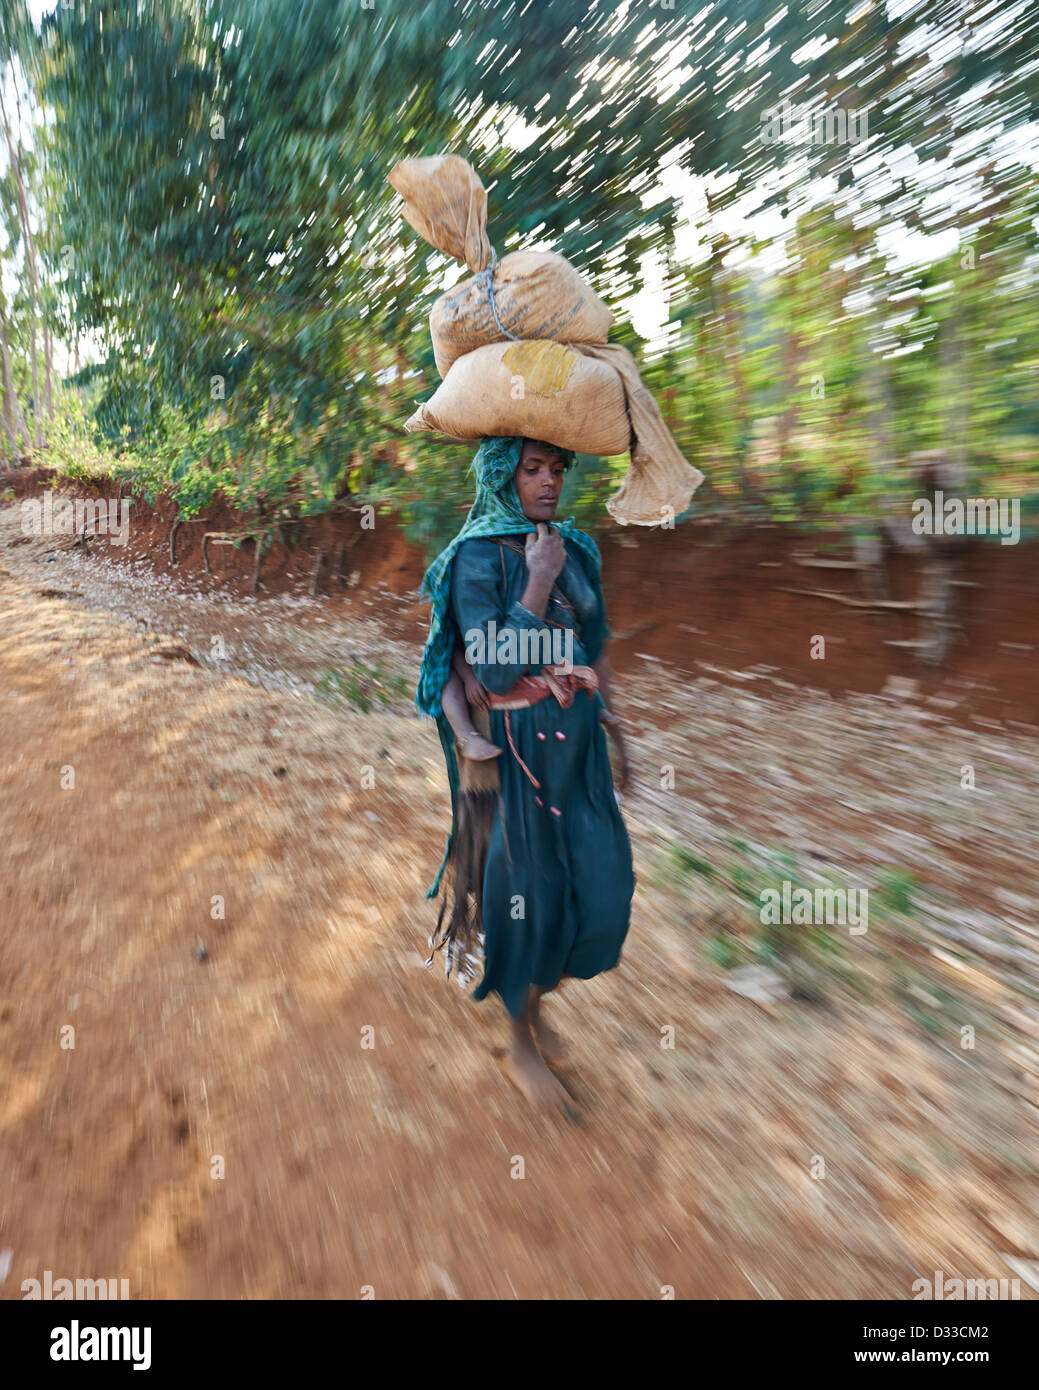 A women carrying groceries on her head from the market walking down a dirt path - Stock Image